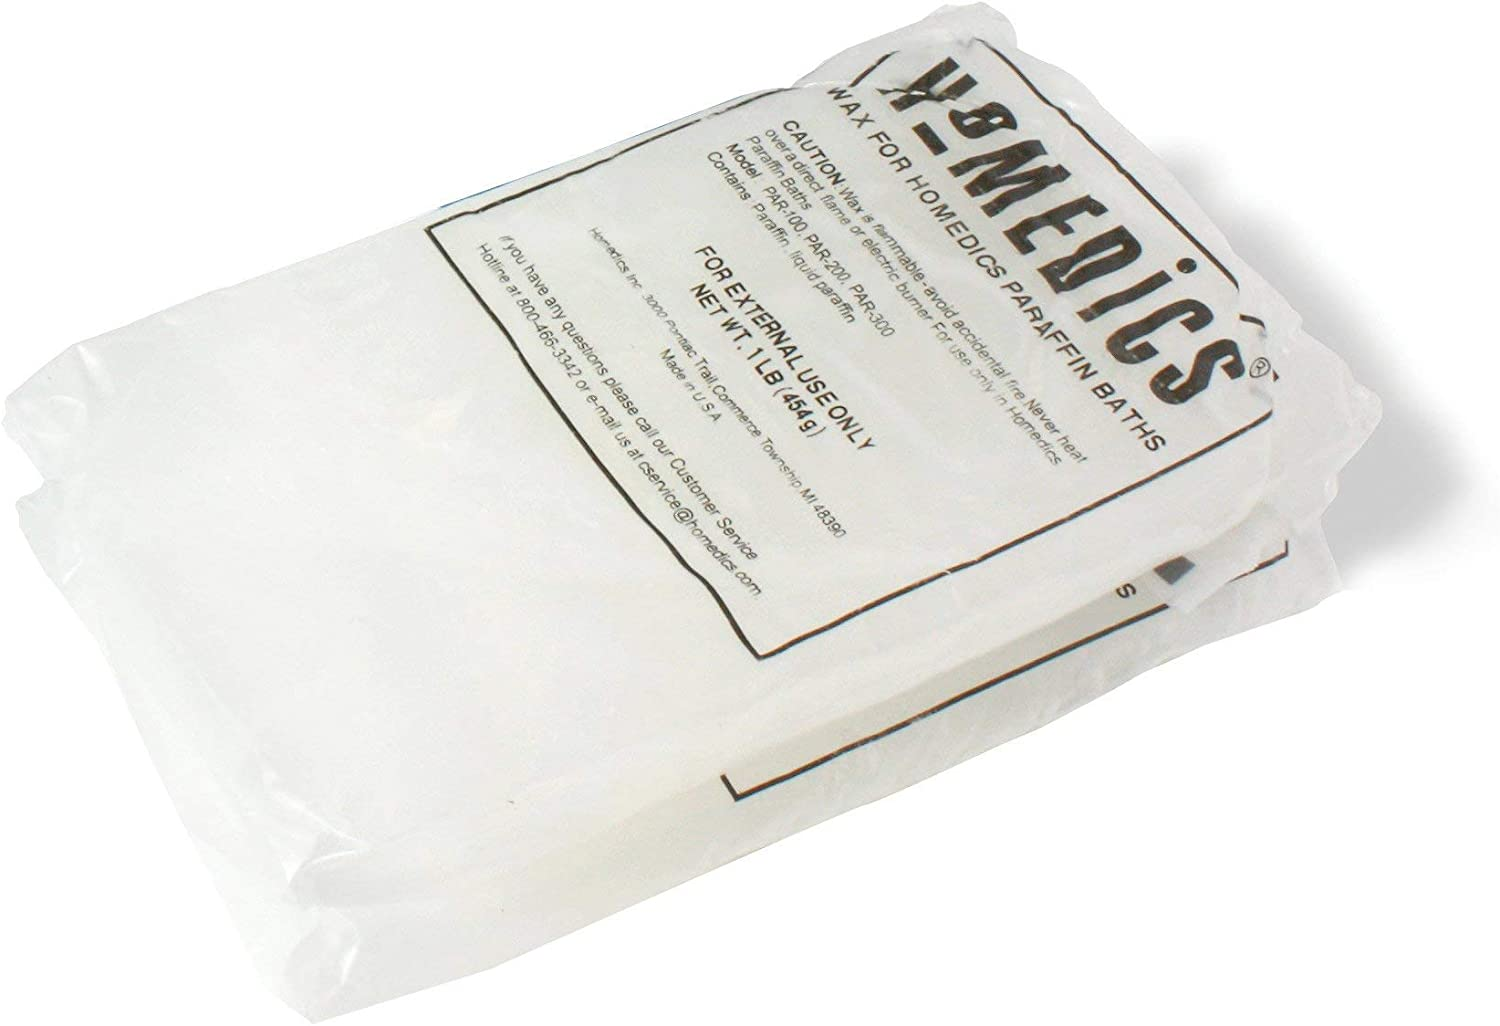 HoMedics, ParaSpa Paraffin Wax Refill | Two 1-Pound Packages - 100% Pure, Hypoallergenic Paraffin Wax | 20 Plastic Liners | Unscented, No Dyes | Moisturize & Soften Sensitive Skin : Parafin Wax Refill : Beauty